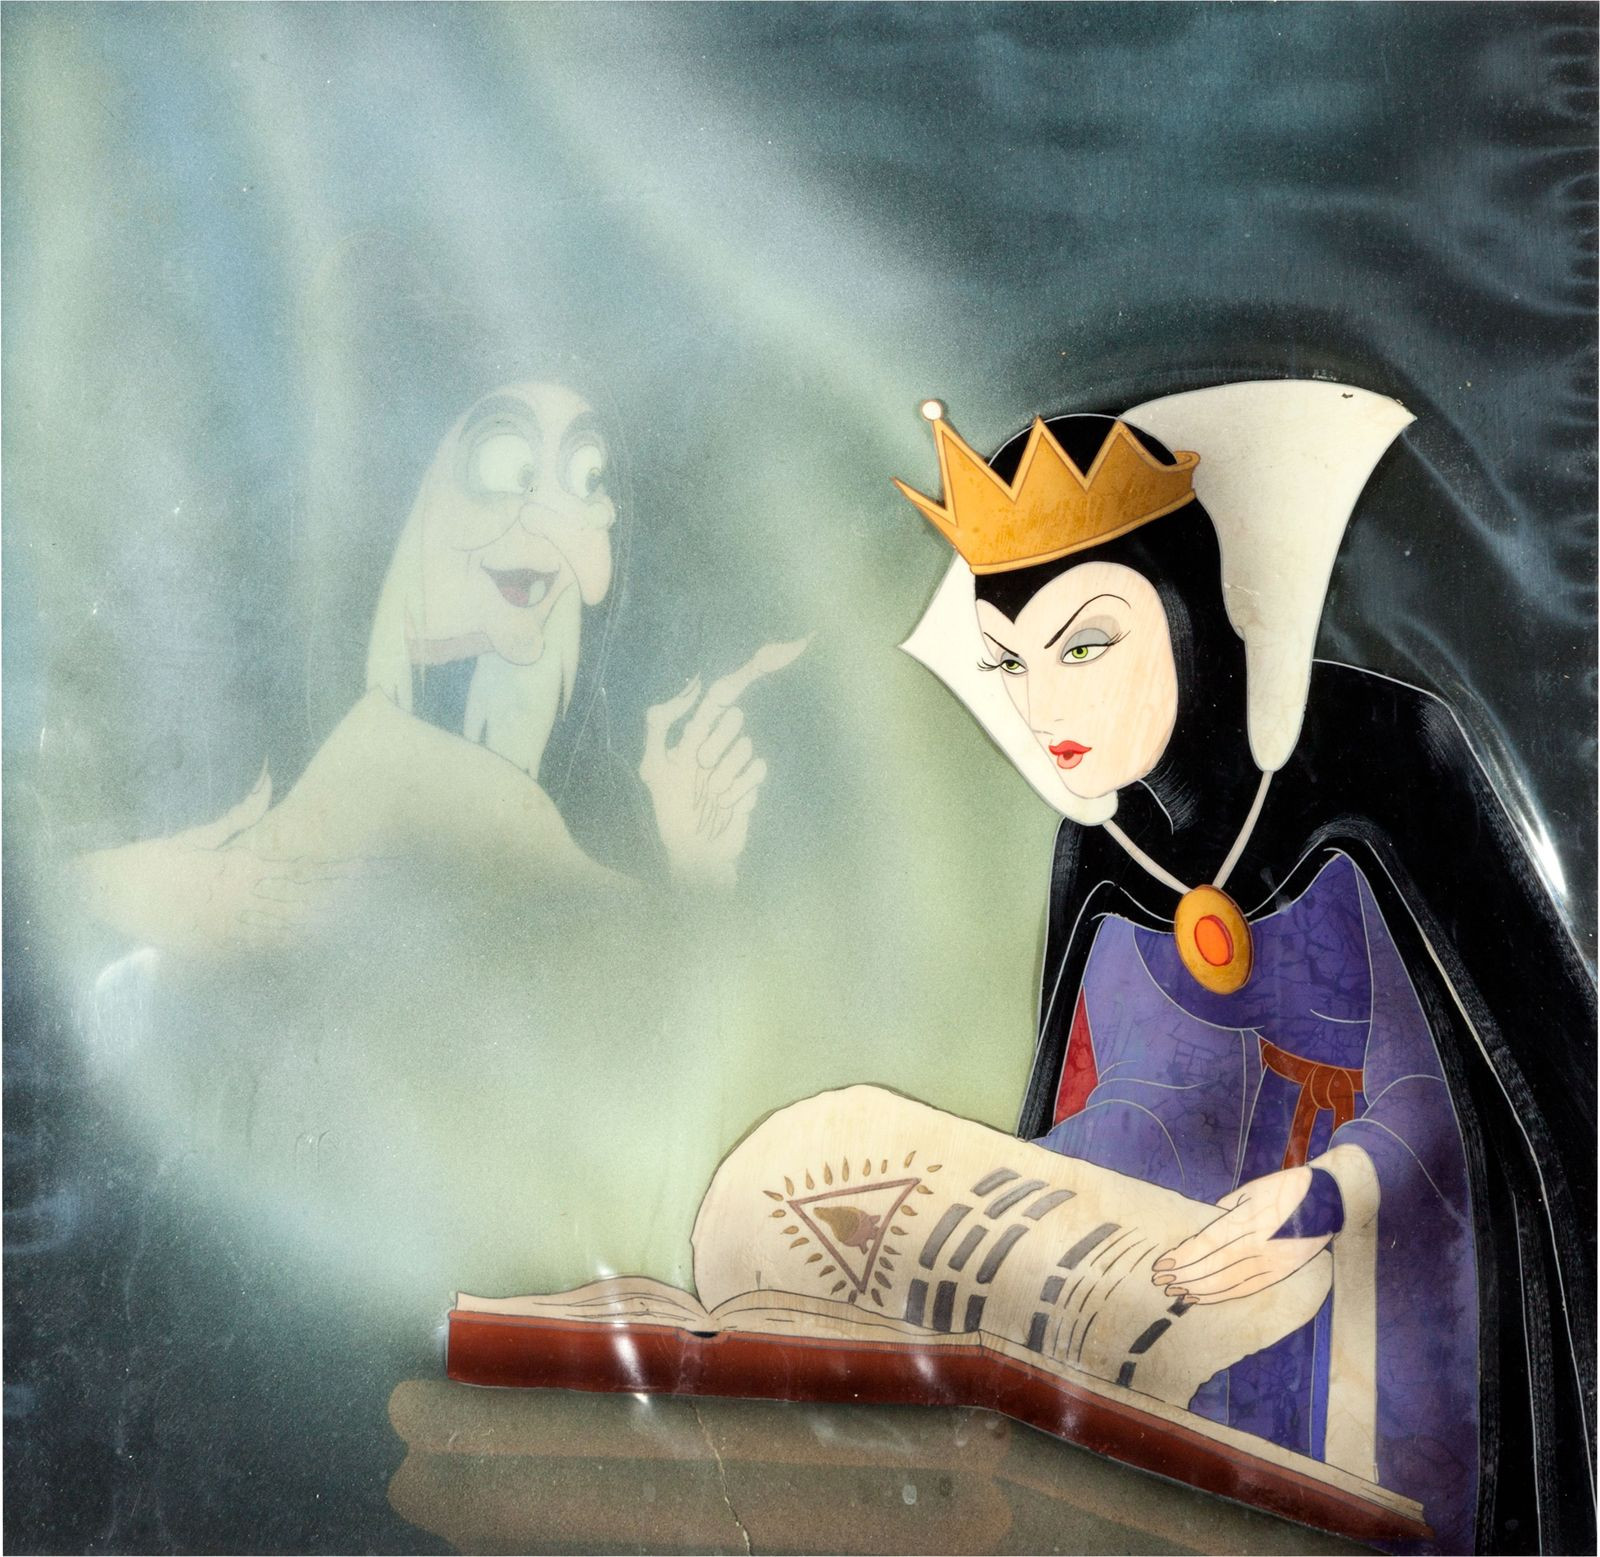 The Evil Queen in Snow White and the Seven Dwarfs